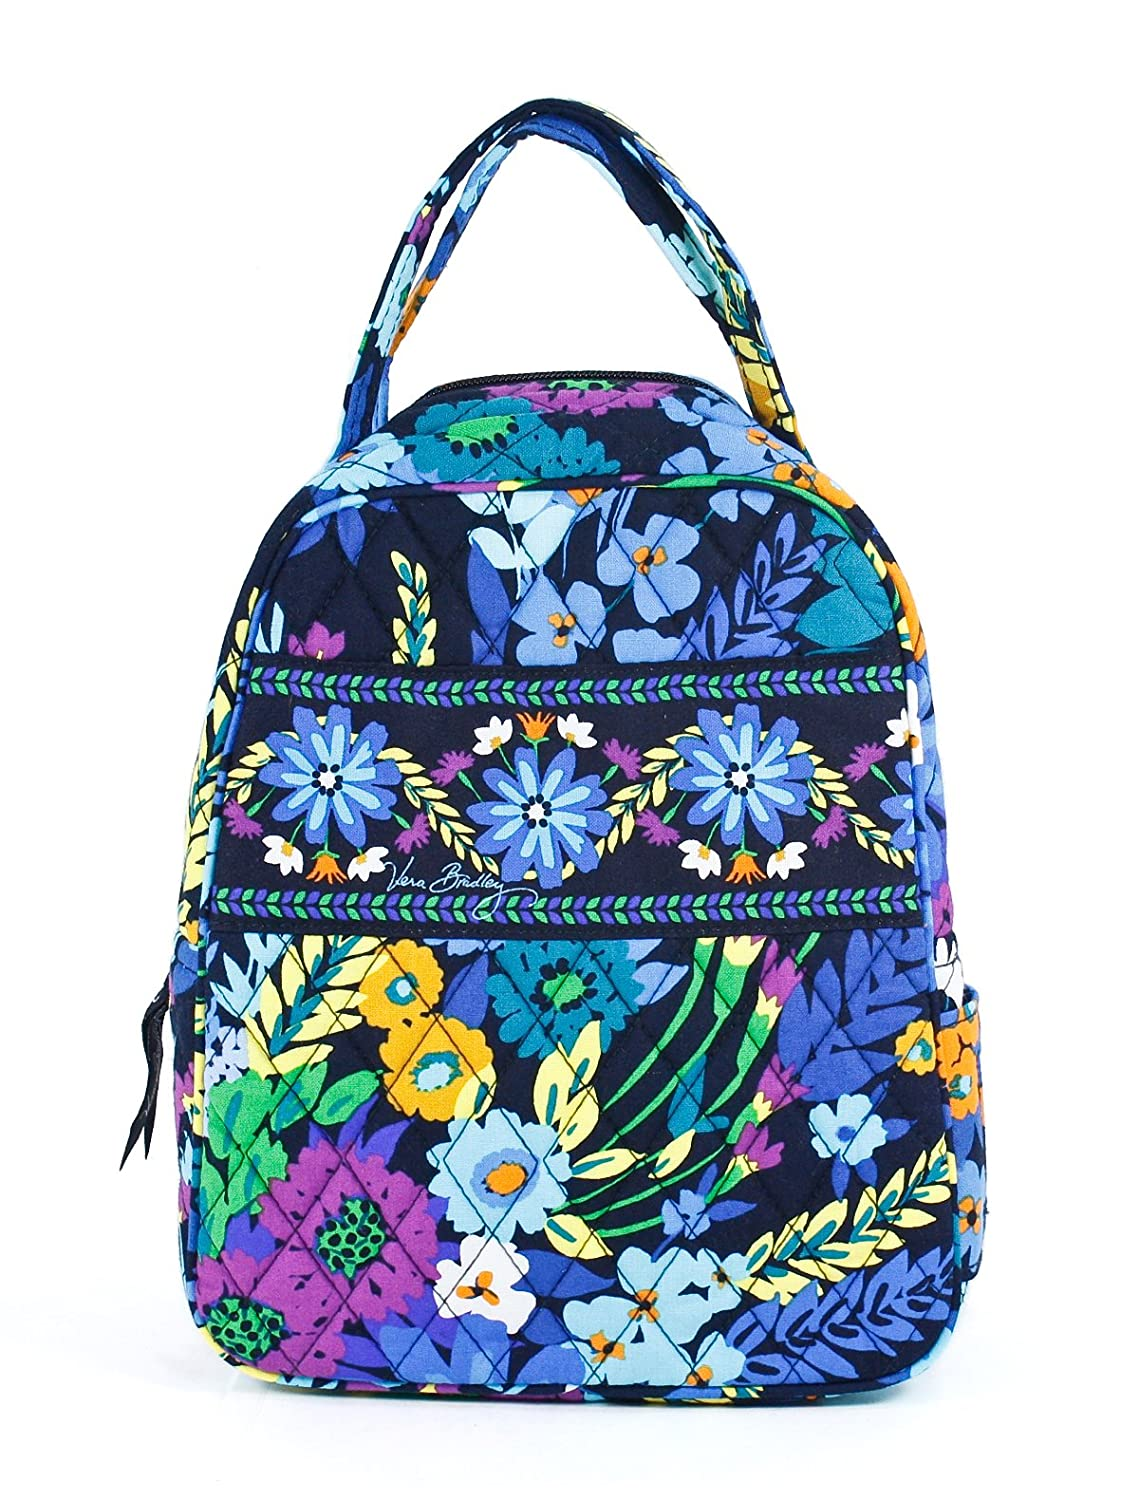 Vera Bradley Lunch Bunch Midnight Blues by Vera Bradley 12370-136